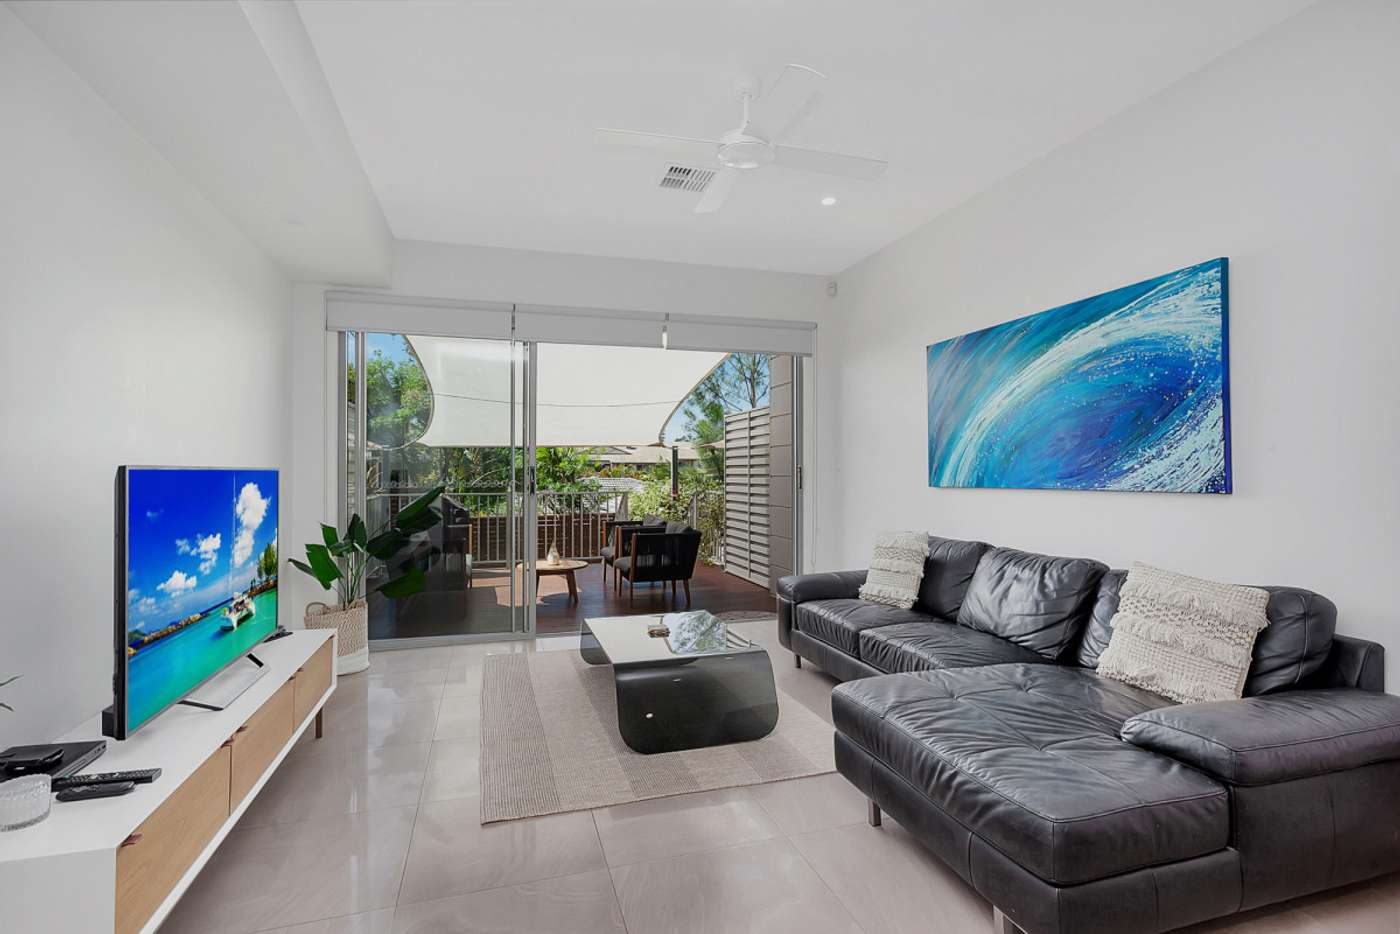 Fifth view of Homely townhouse listing, 3/17 Stephens Street, Burleigh Heads QLD 4220